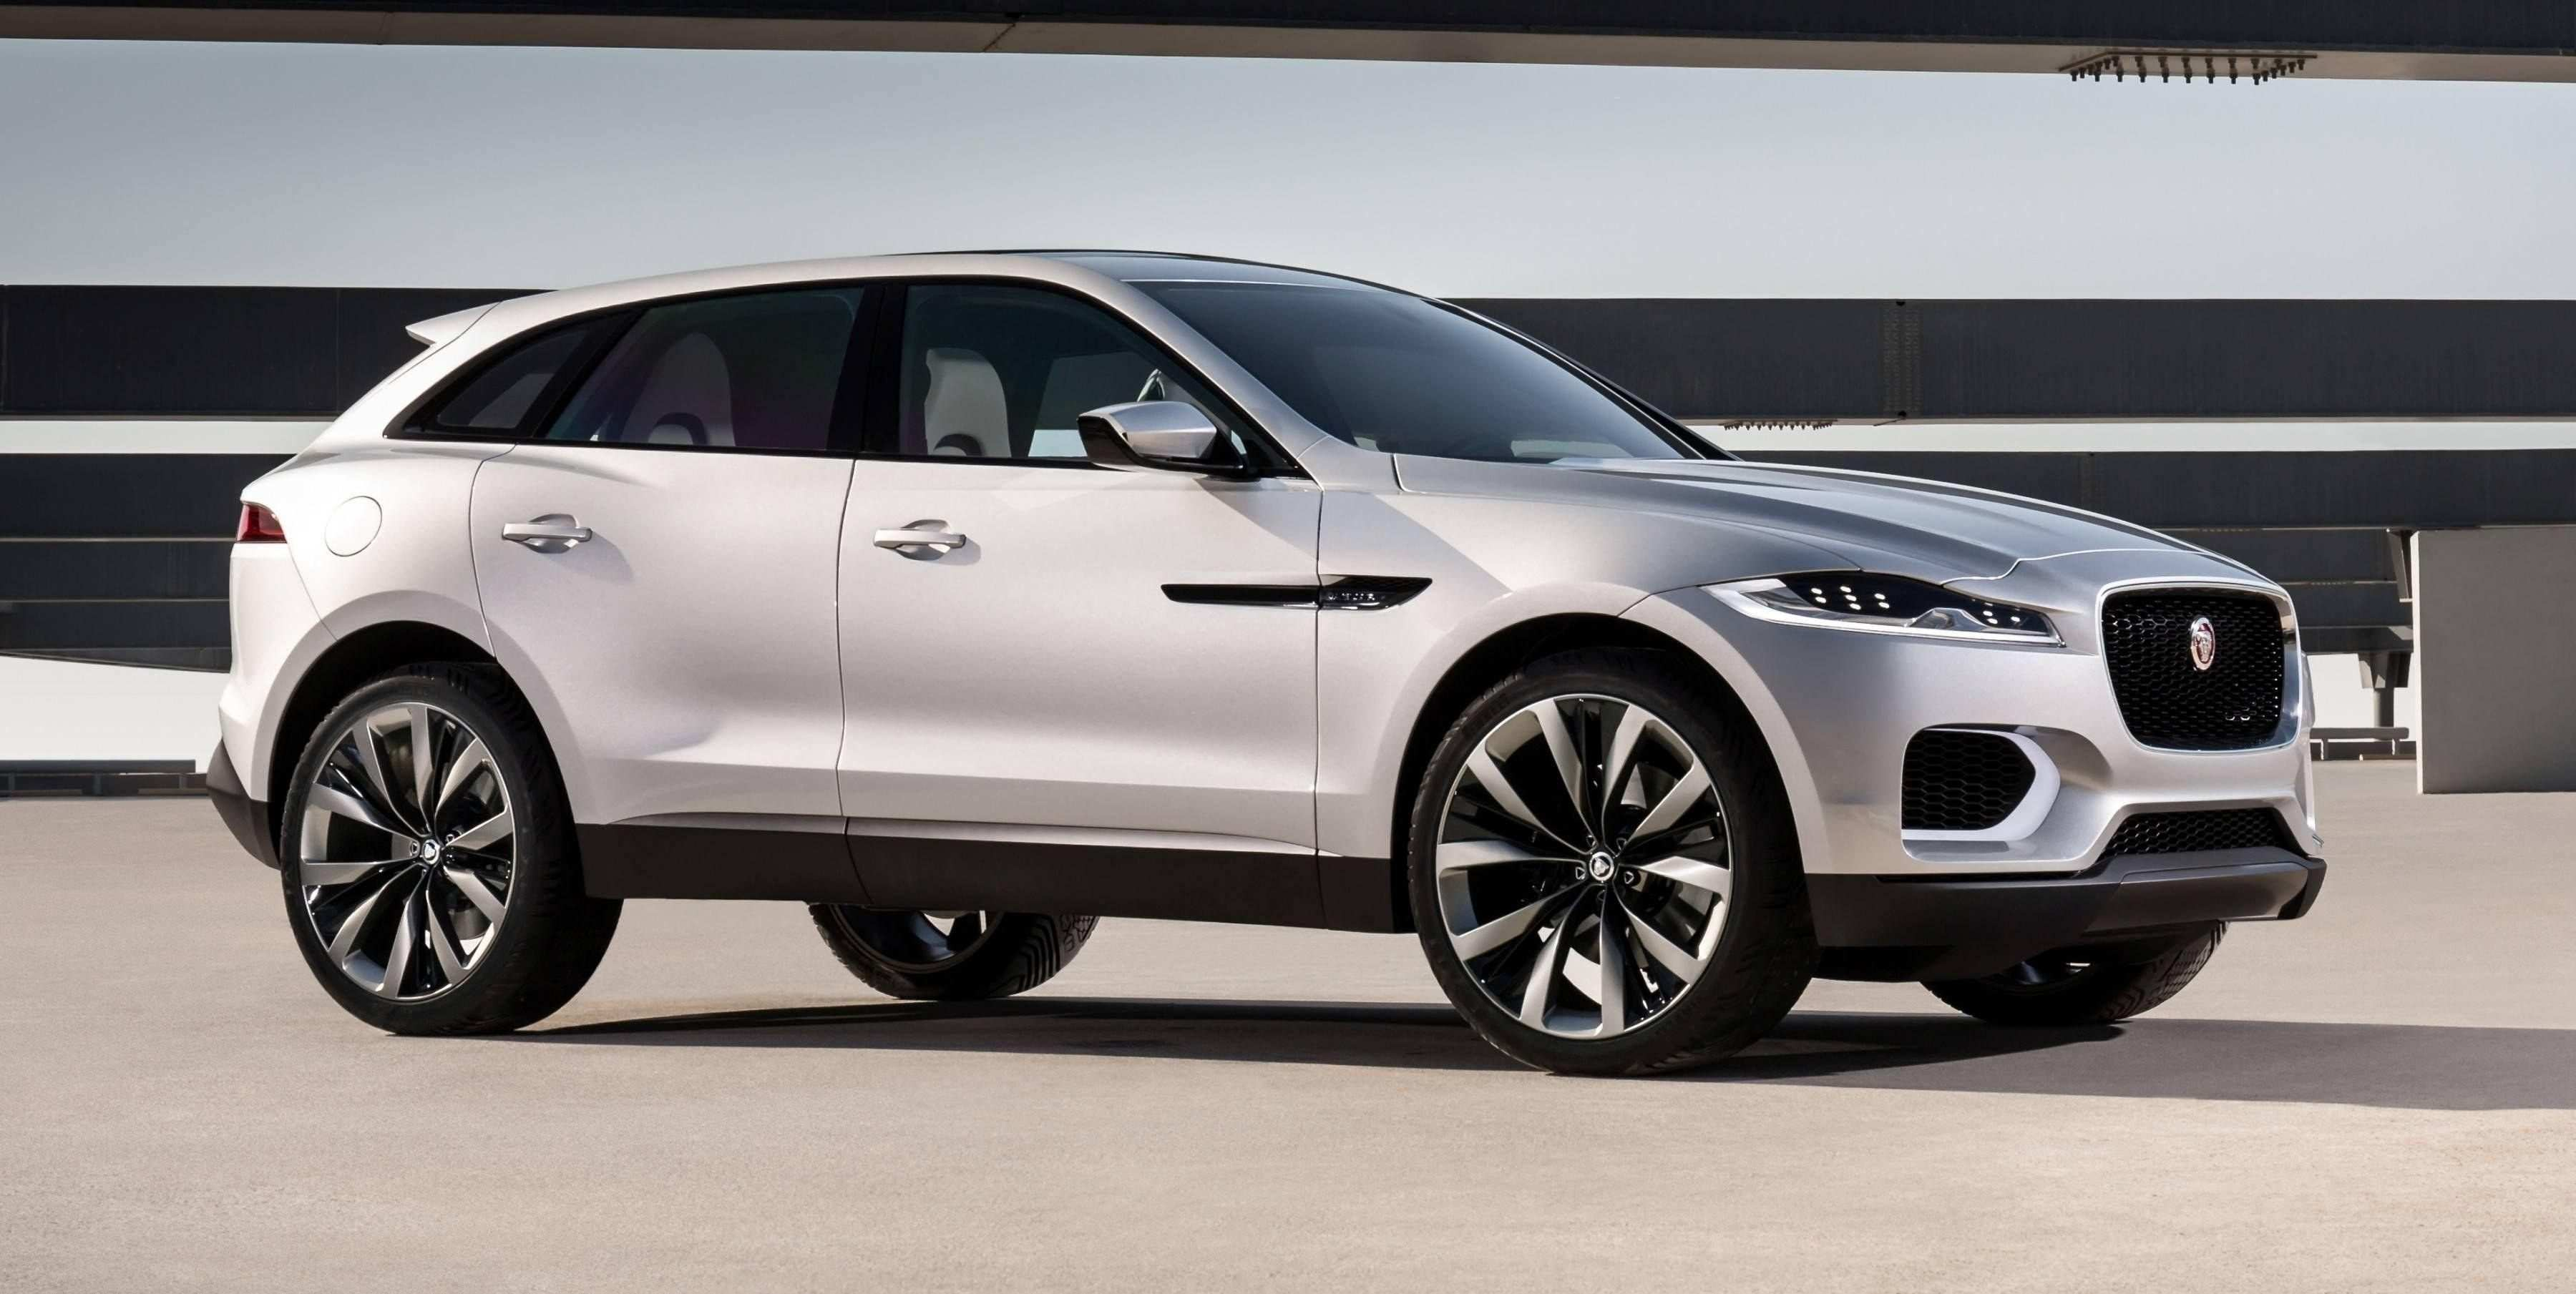 38 New 2019 Jaguar C X17 Crossover Model